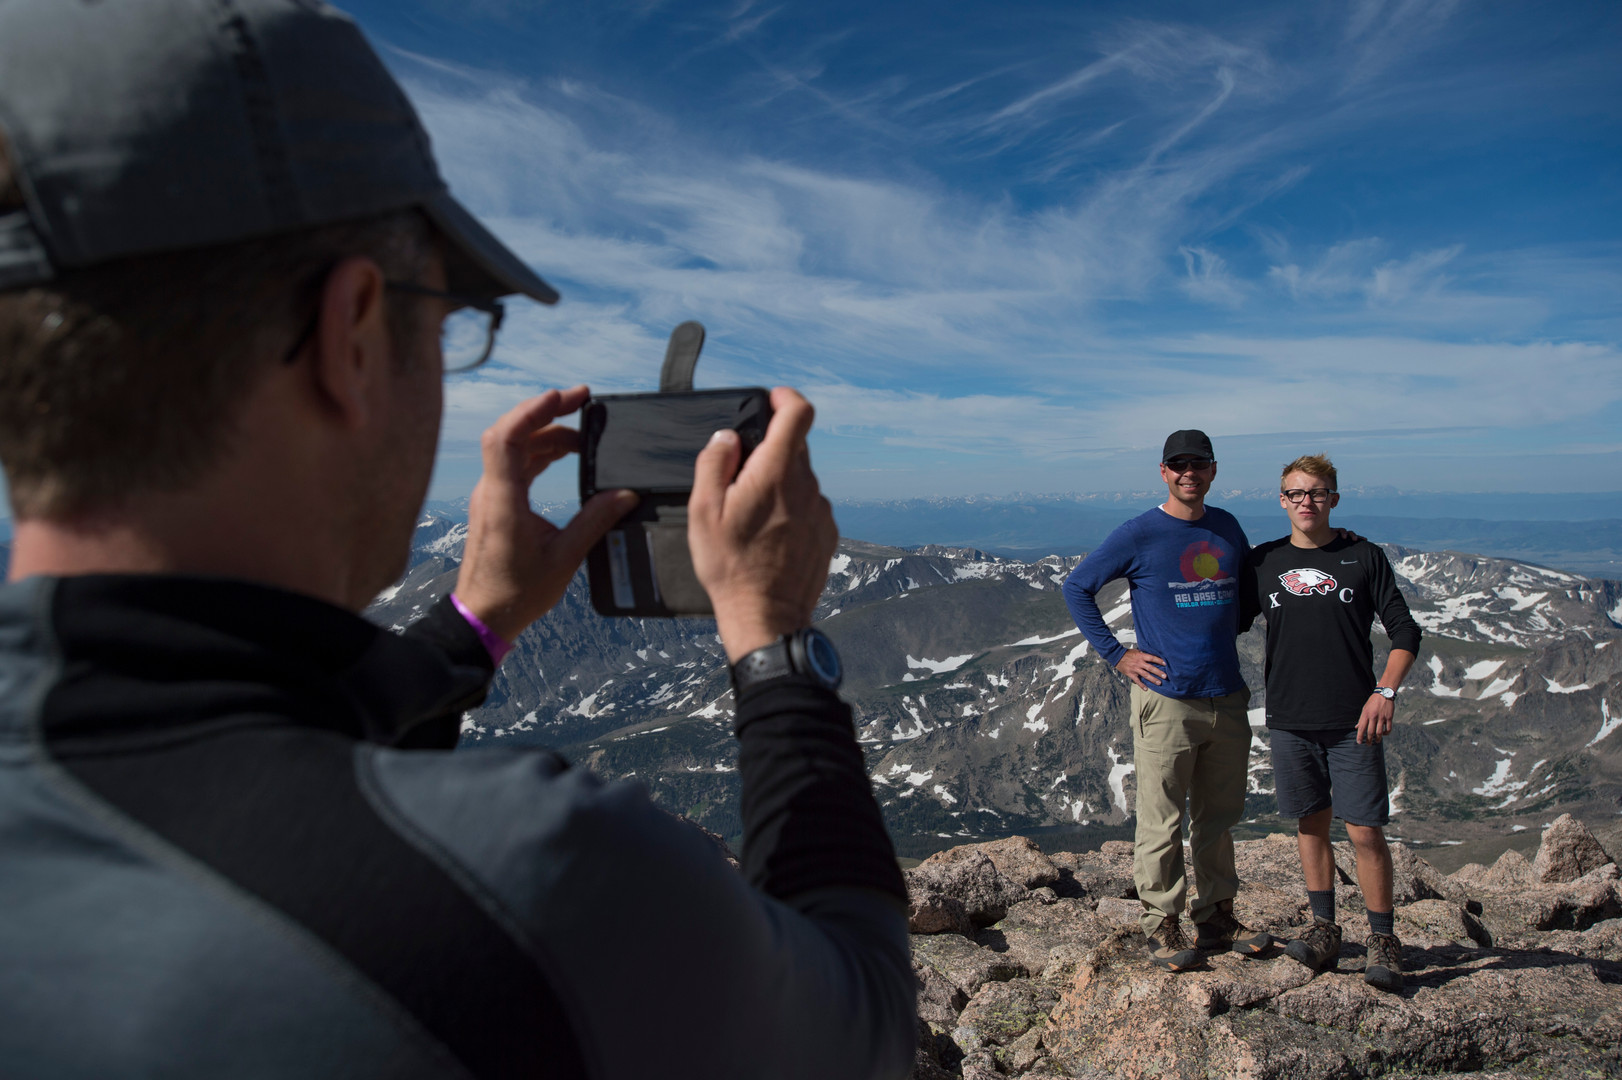 Climbers pose for photos on the summit of Longs Peak in Rocky Mountain National Park on Friday, July 19, 2017.